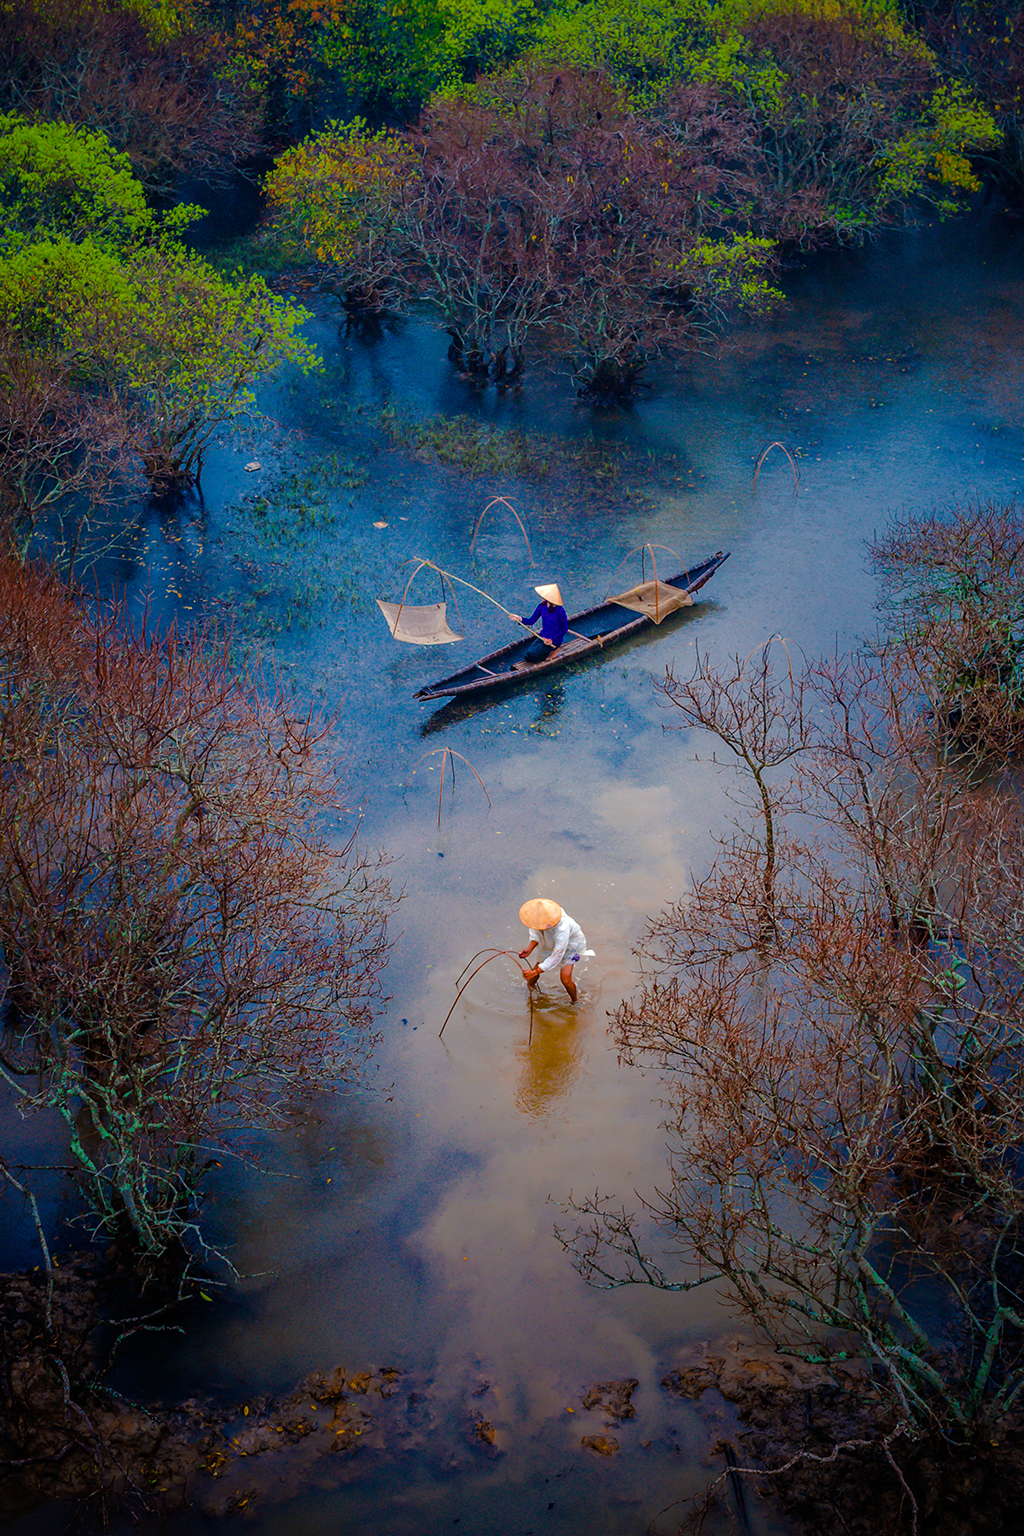 Currently, Ru Cha mangrove forest has been the favorite destination of many photographers